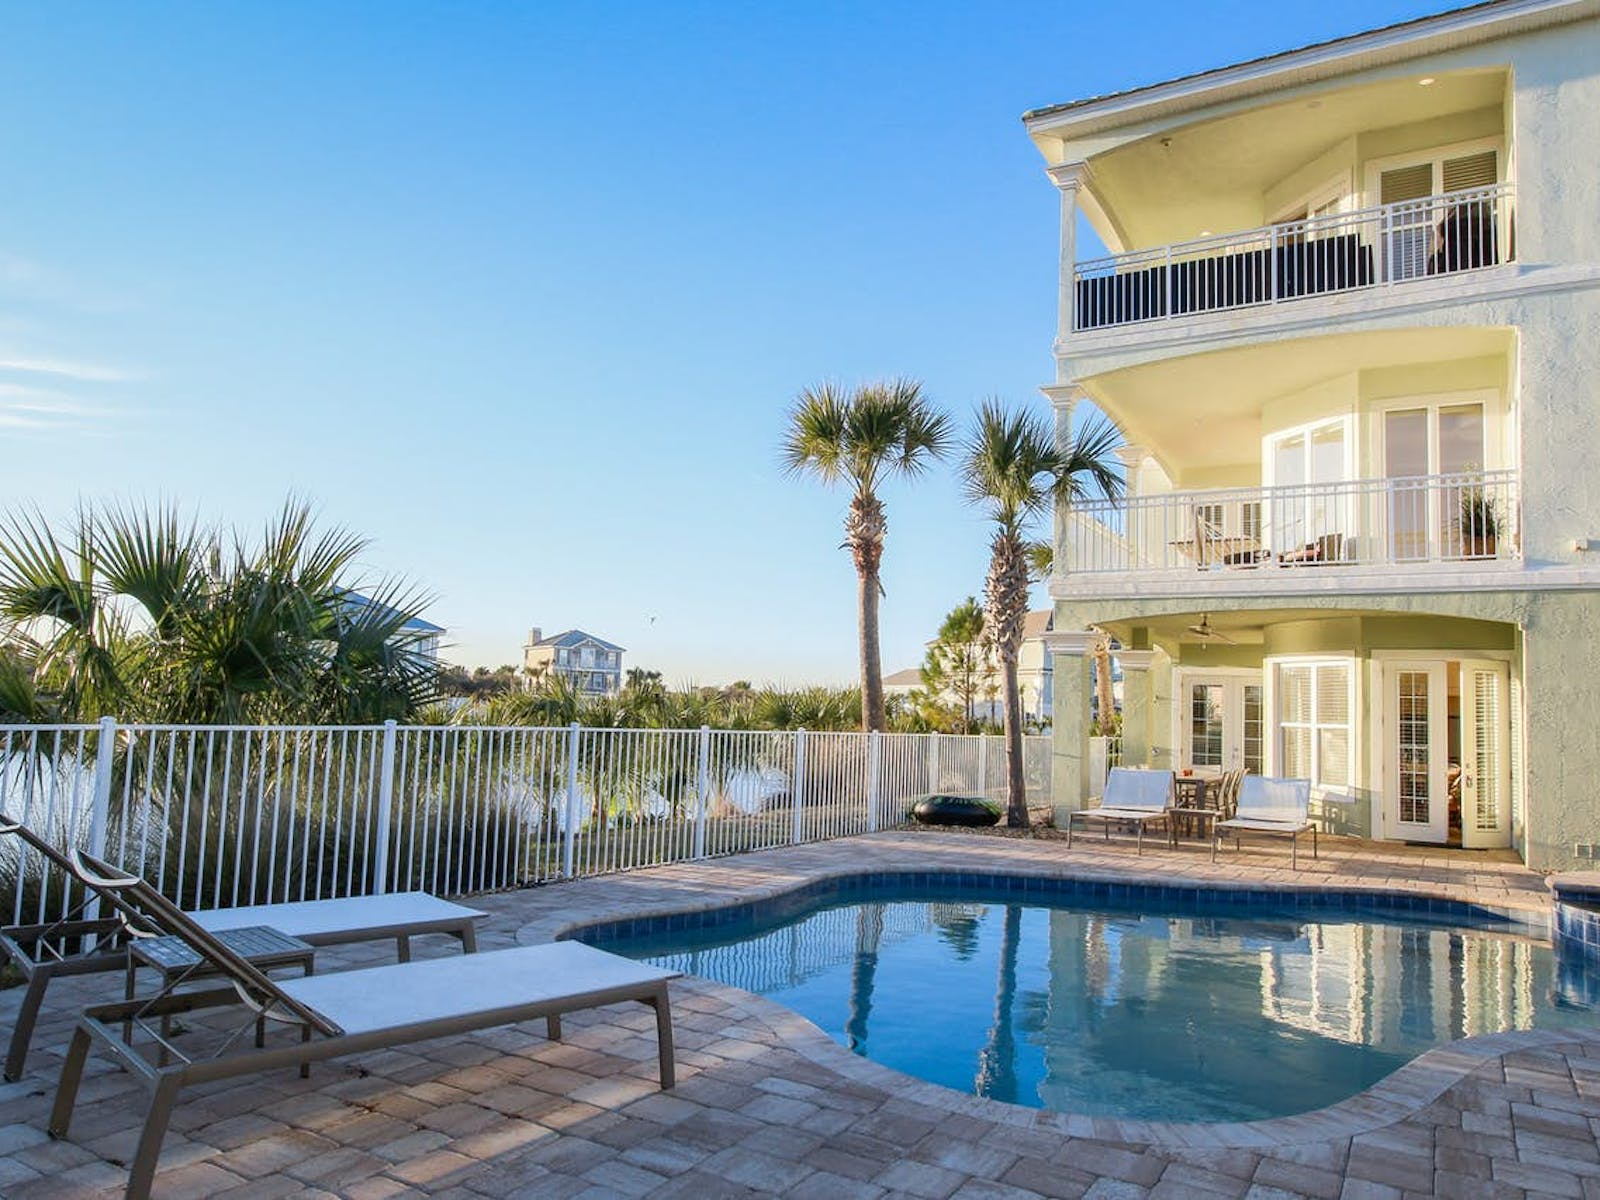 2018 Best Places to Buy a Vacation Home | Vacasa